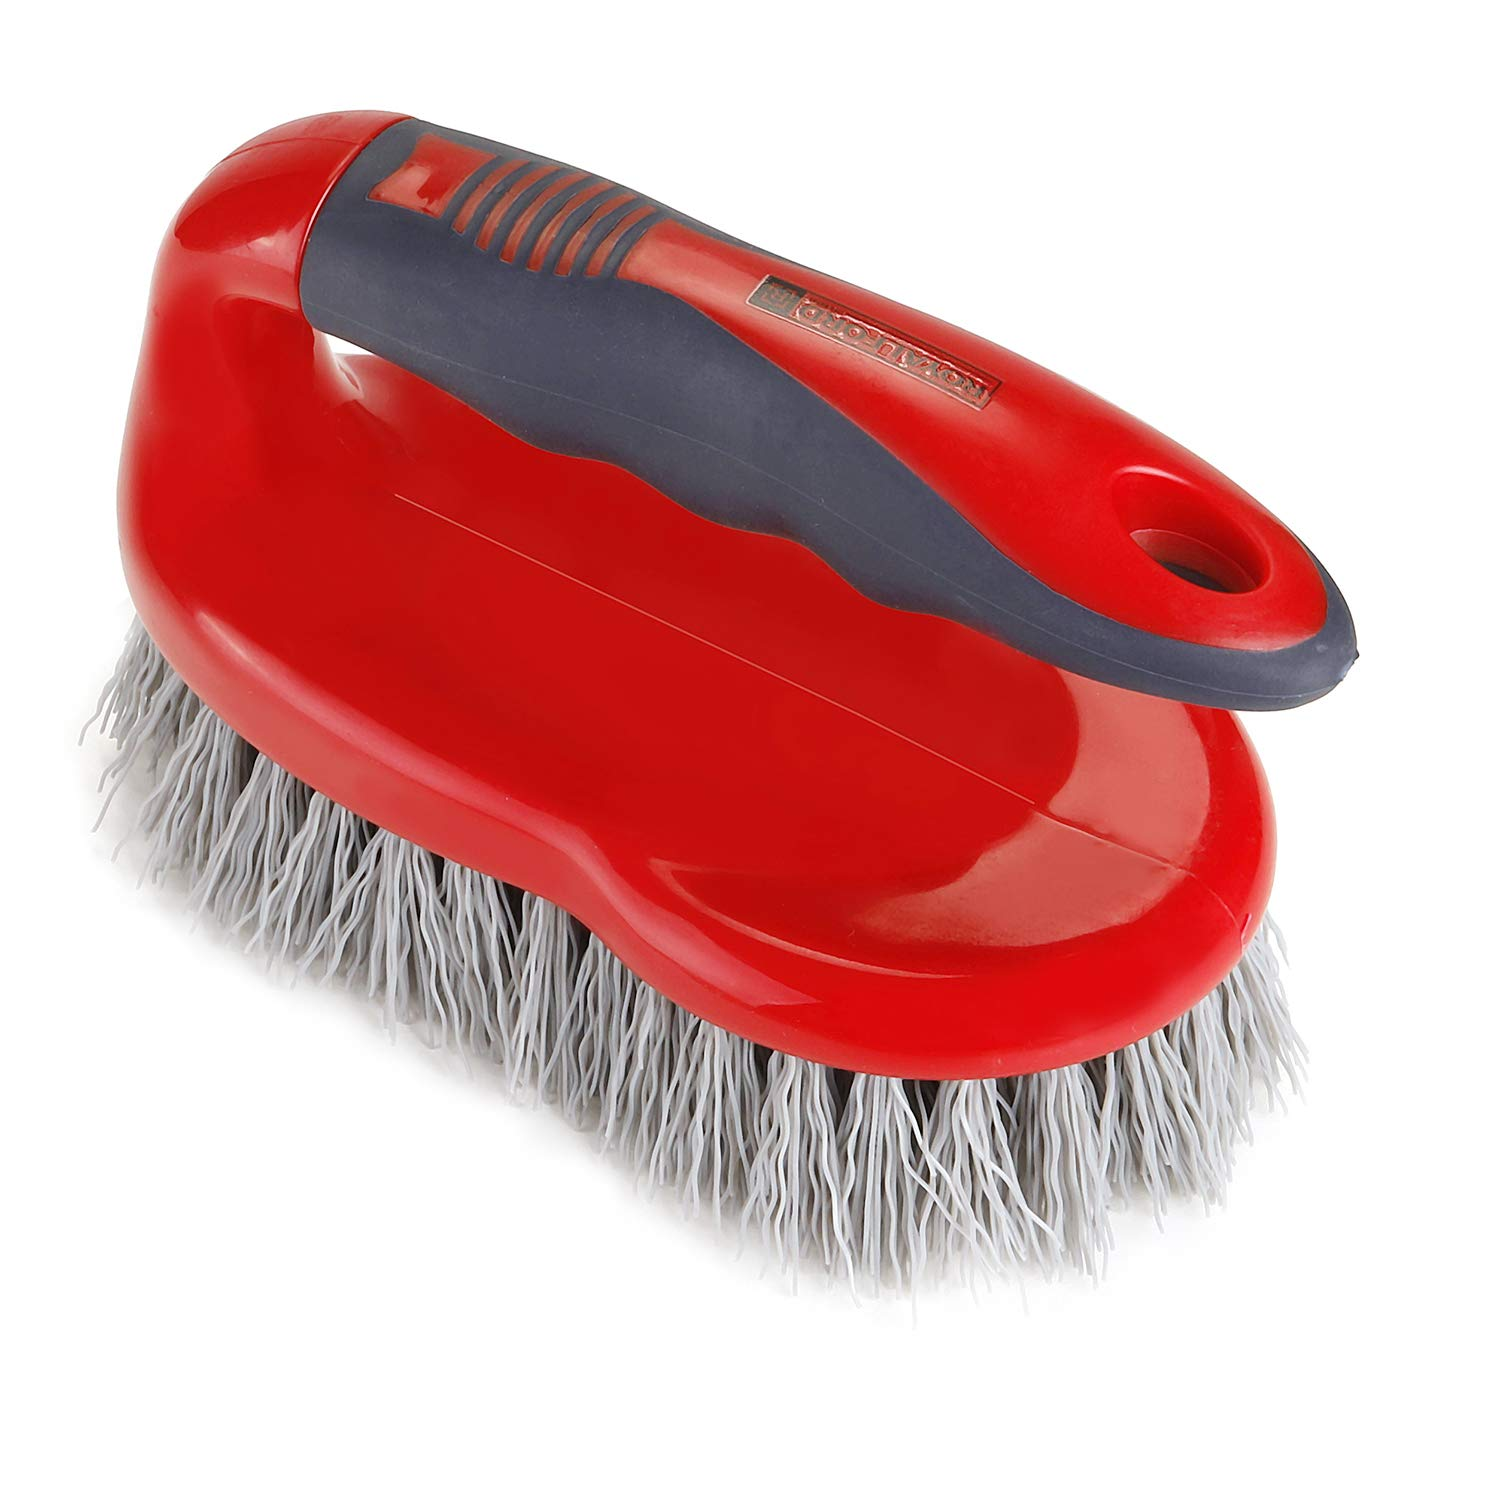 Royalford Scrubbing Brush with Handle, Red Colour, Easy to Clean Hard Bristle Brush Made of Durable Plastic Material